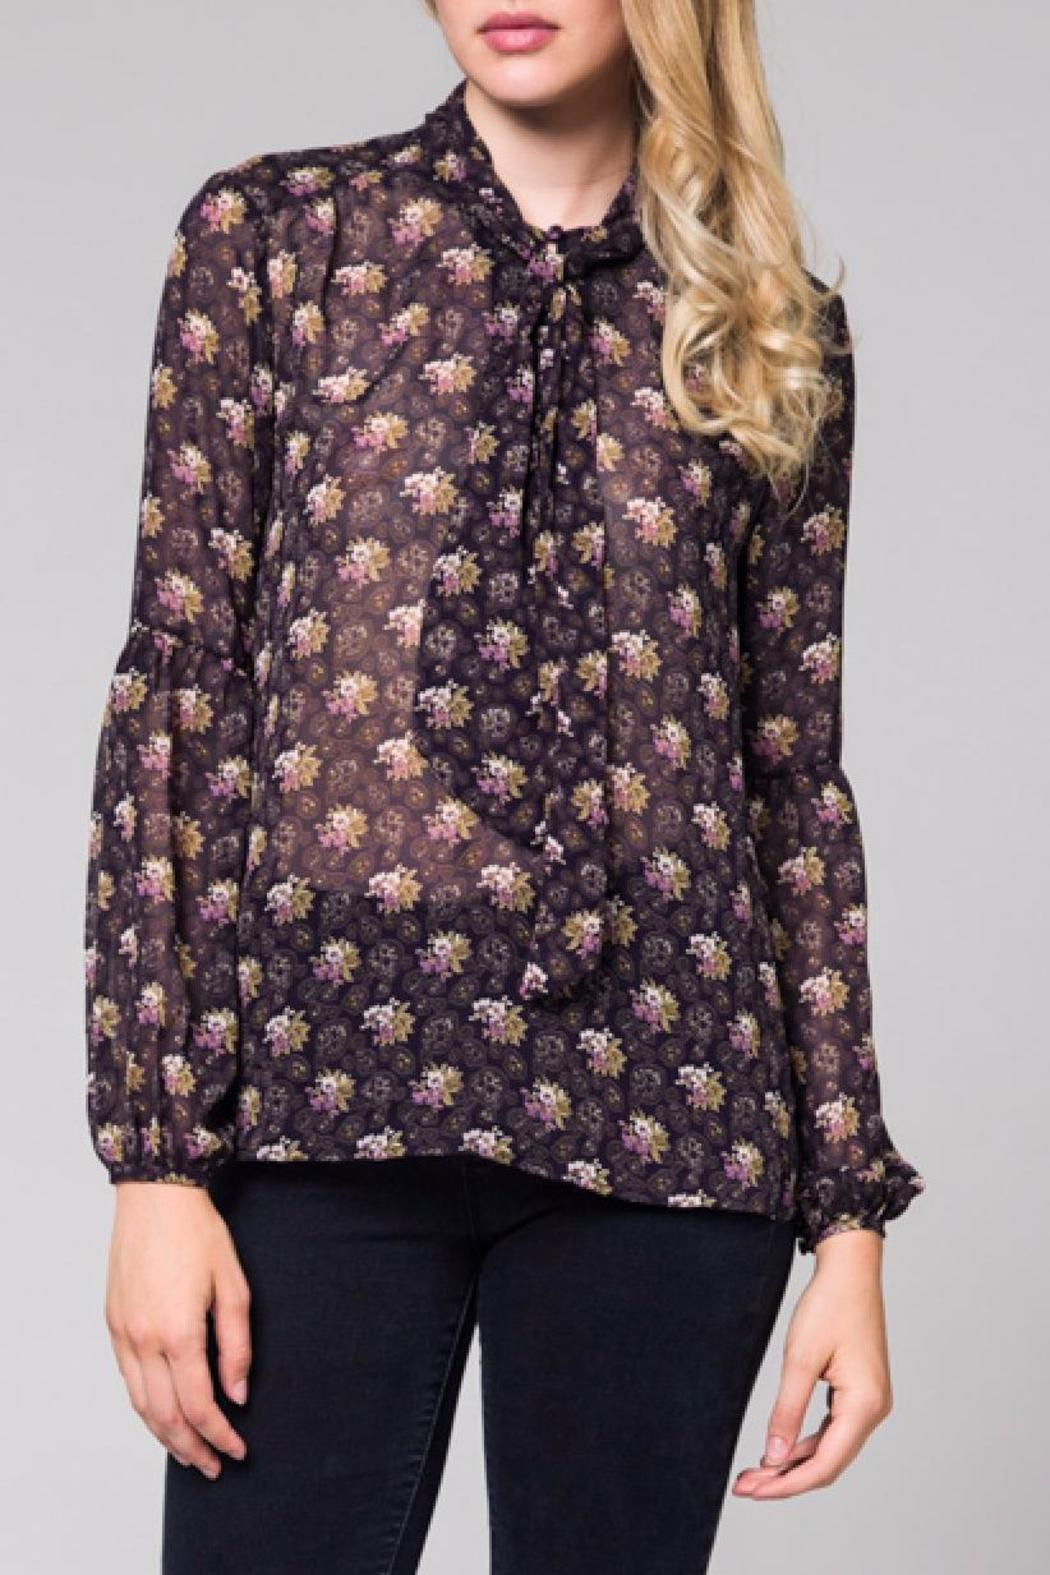 Honey Punch Floral Sheer Blouse - Main Image